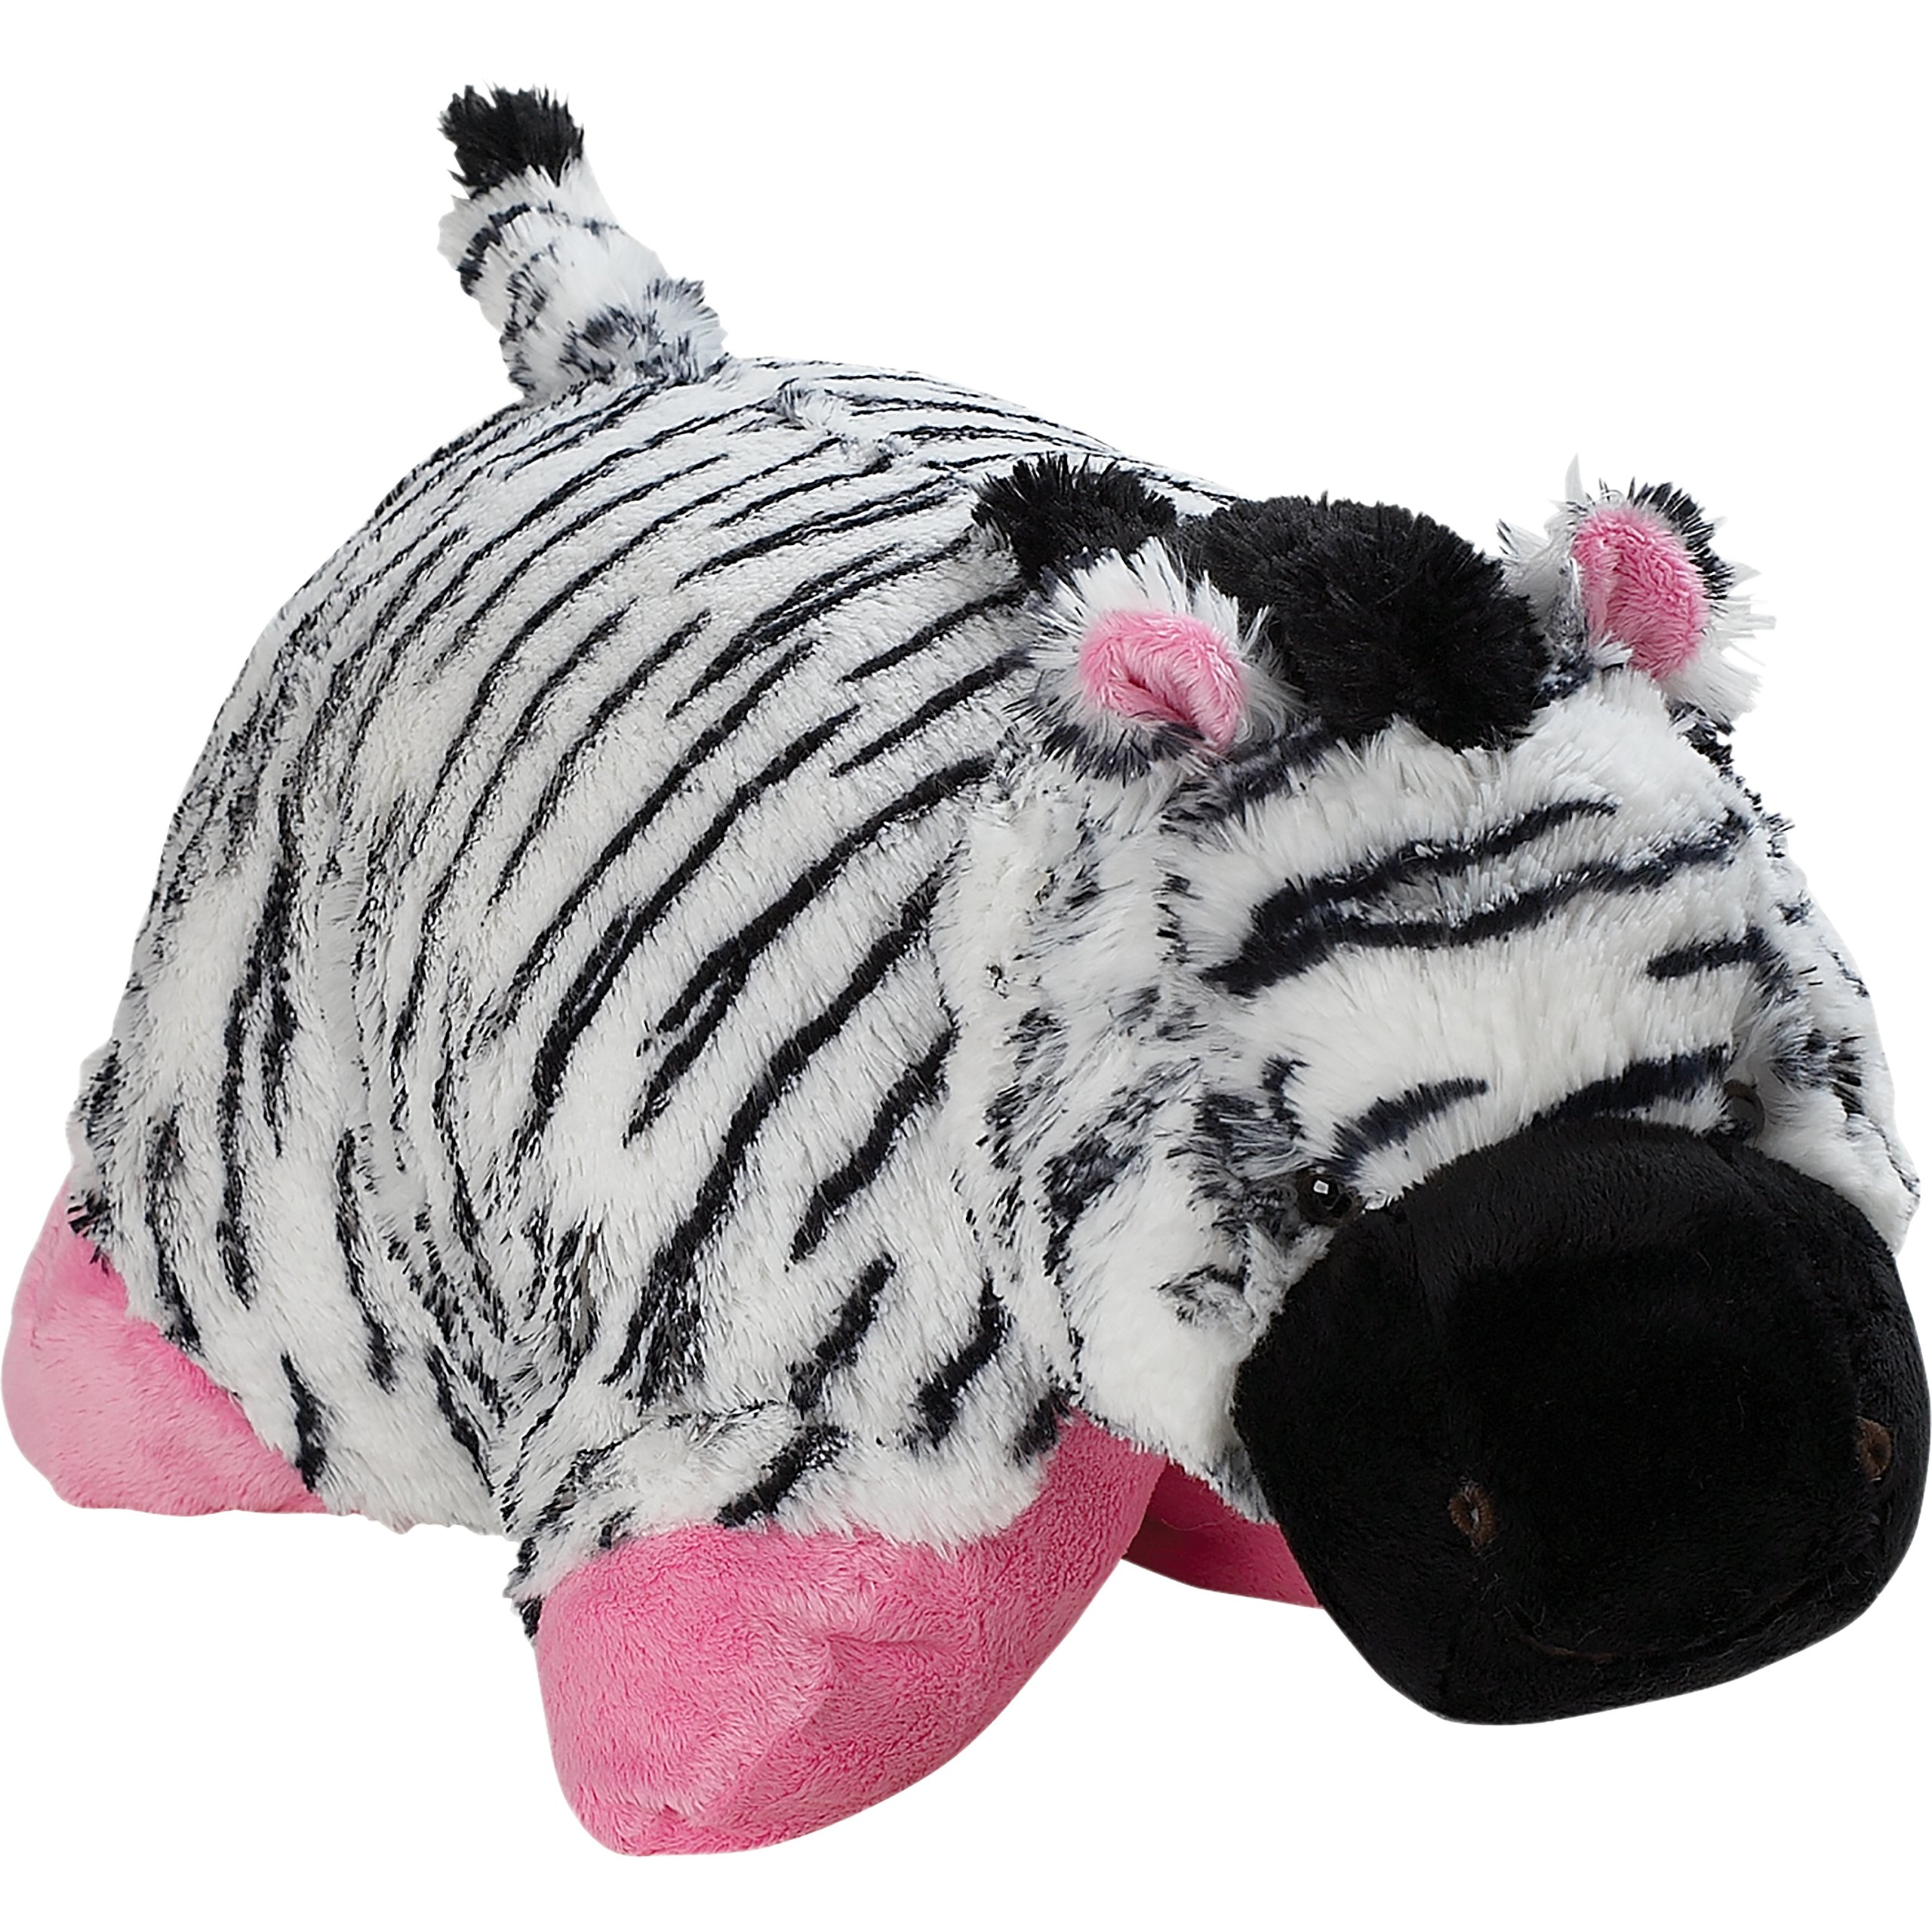 Pillow Pets Signature, Zippity Zebra, 18'' Stuffed Animal Plush Toy